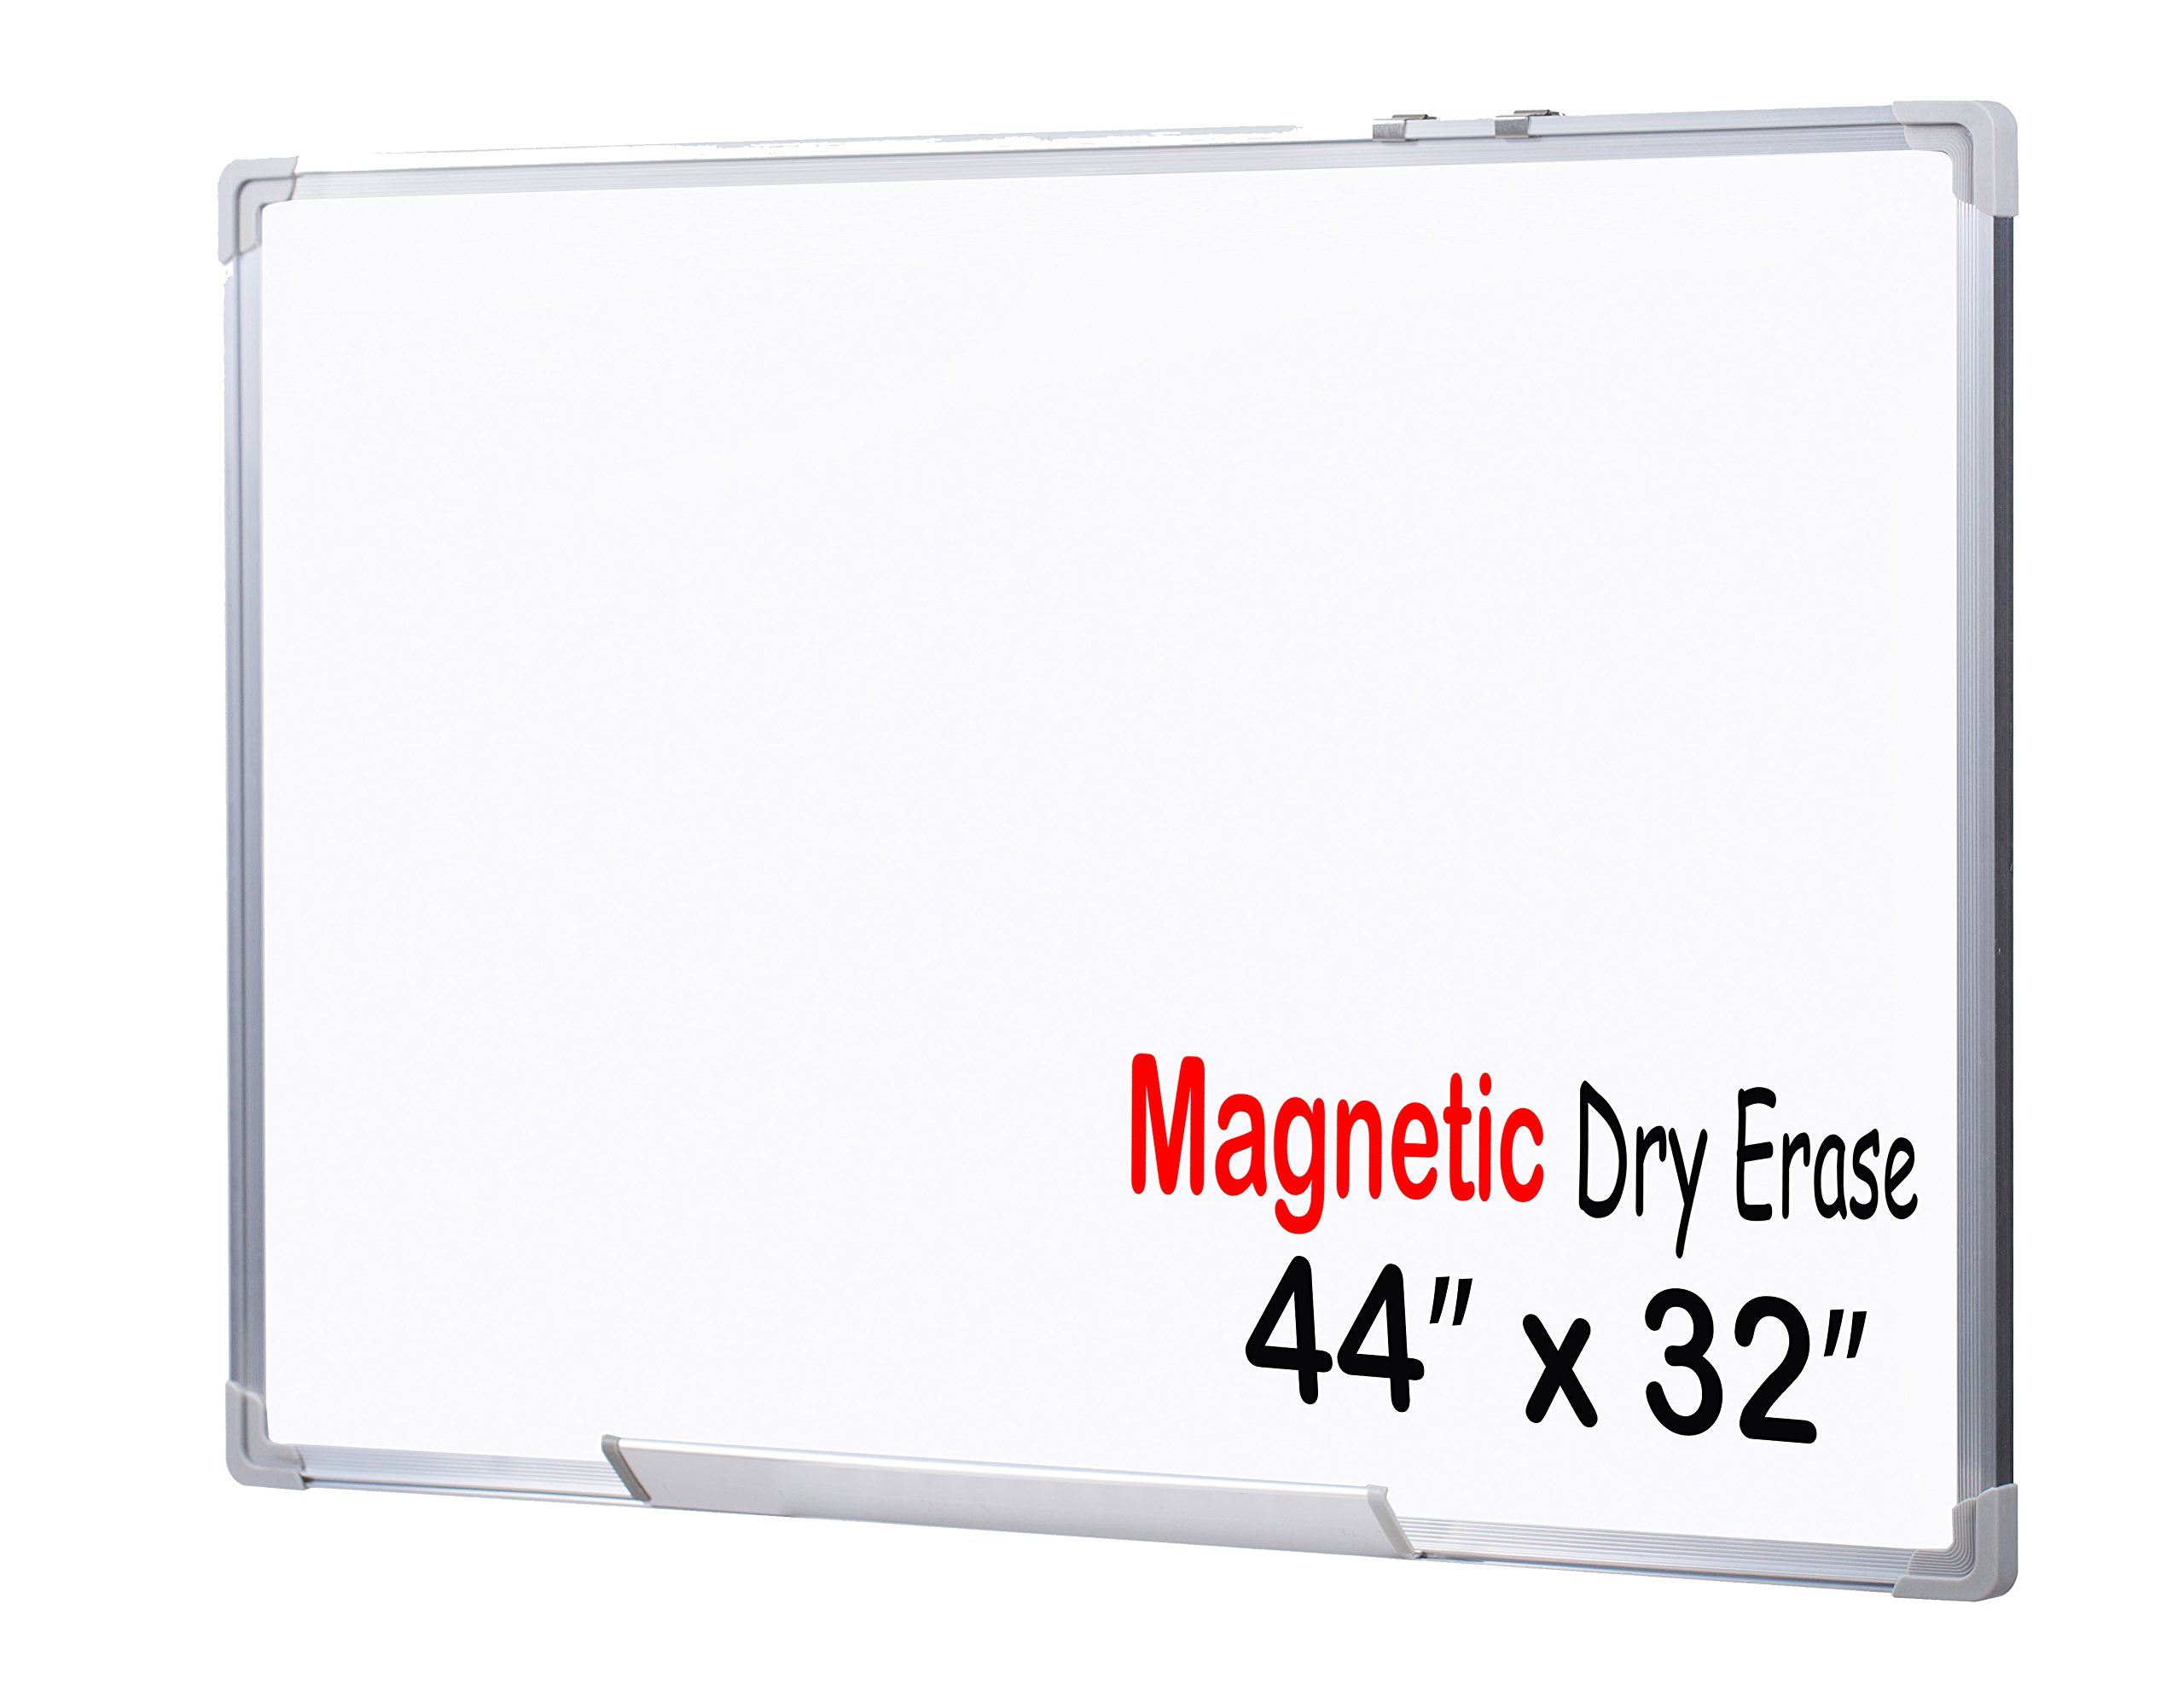 EGI Large Office Magnetic Dry Erase White Board with Aluminum Frame and Wall Mounting Brackets (44 x 32)